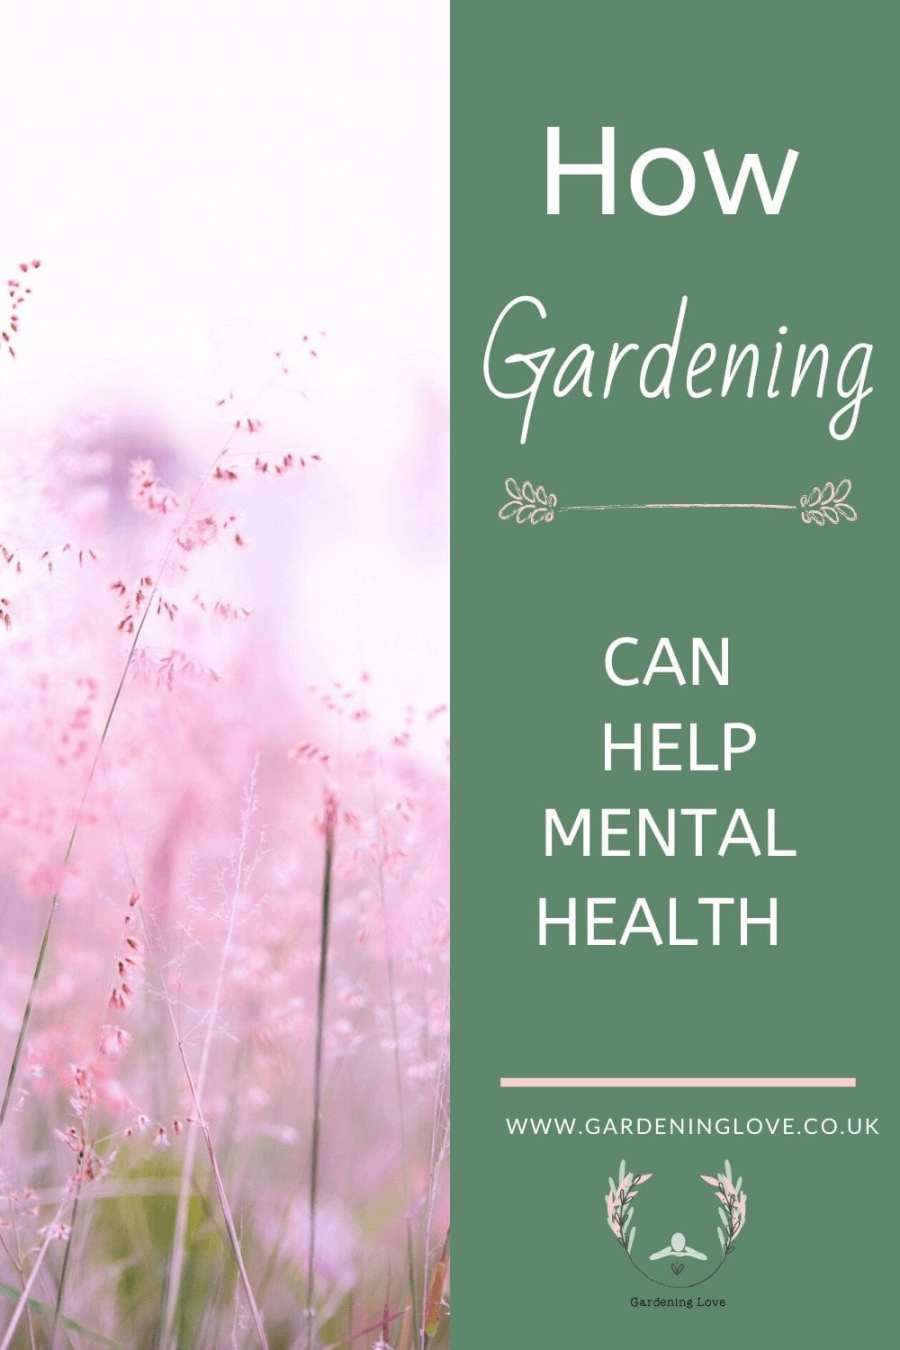 how gardening can help mental health. #garden #mentalhealth #wellbeing #outdoors